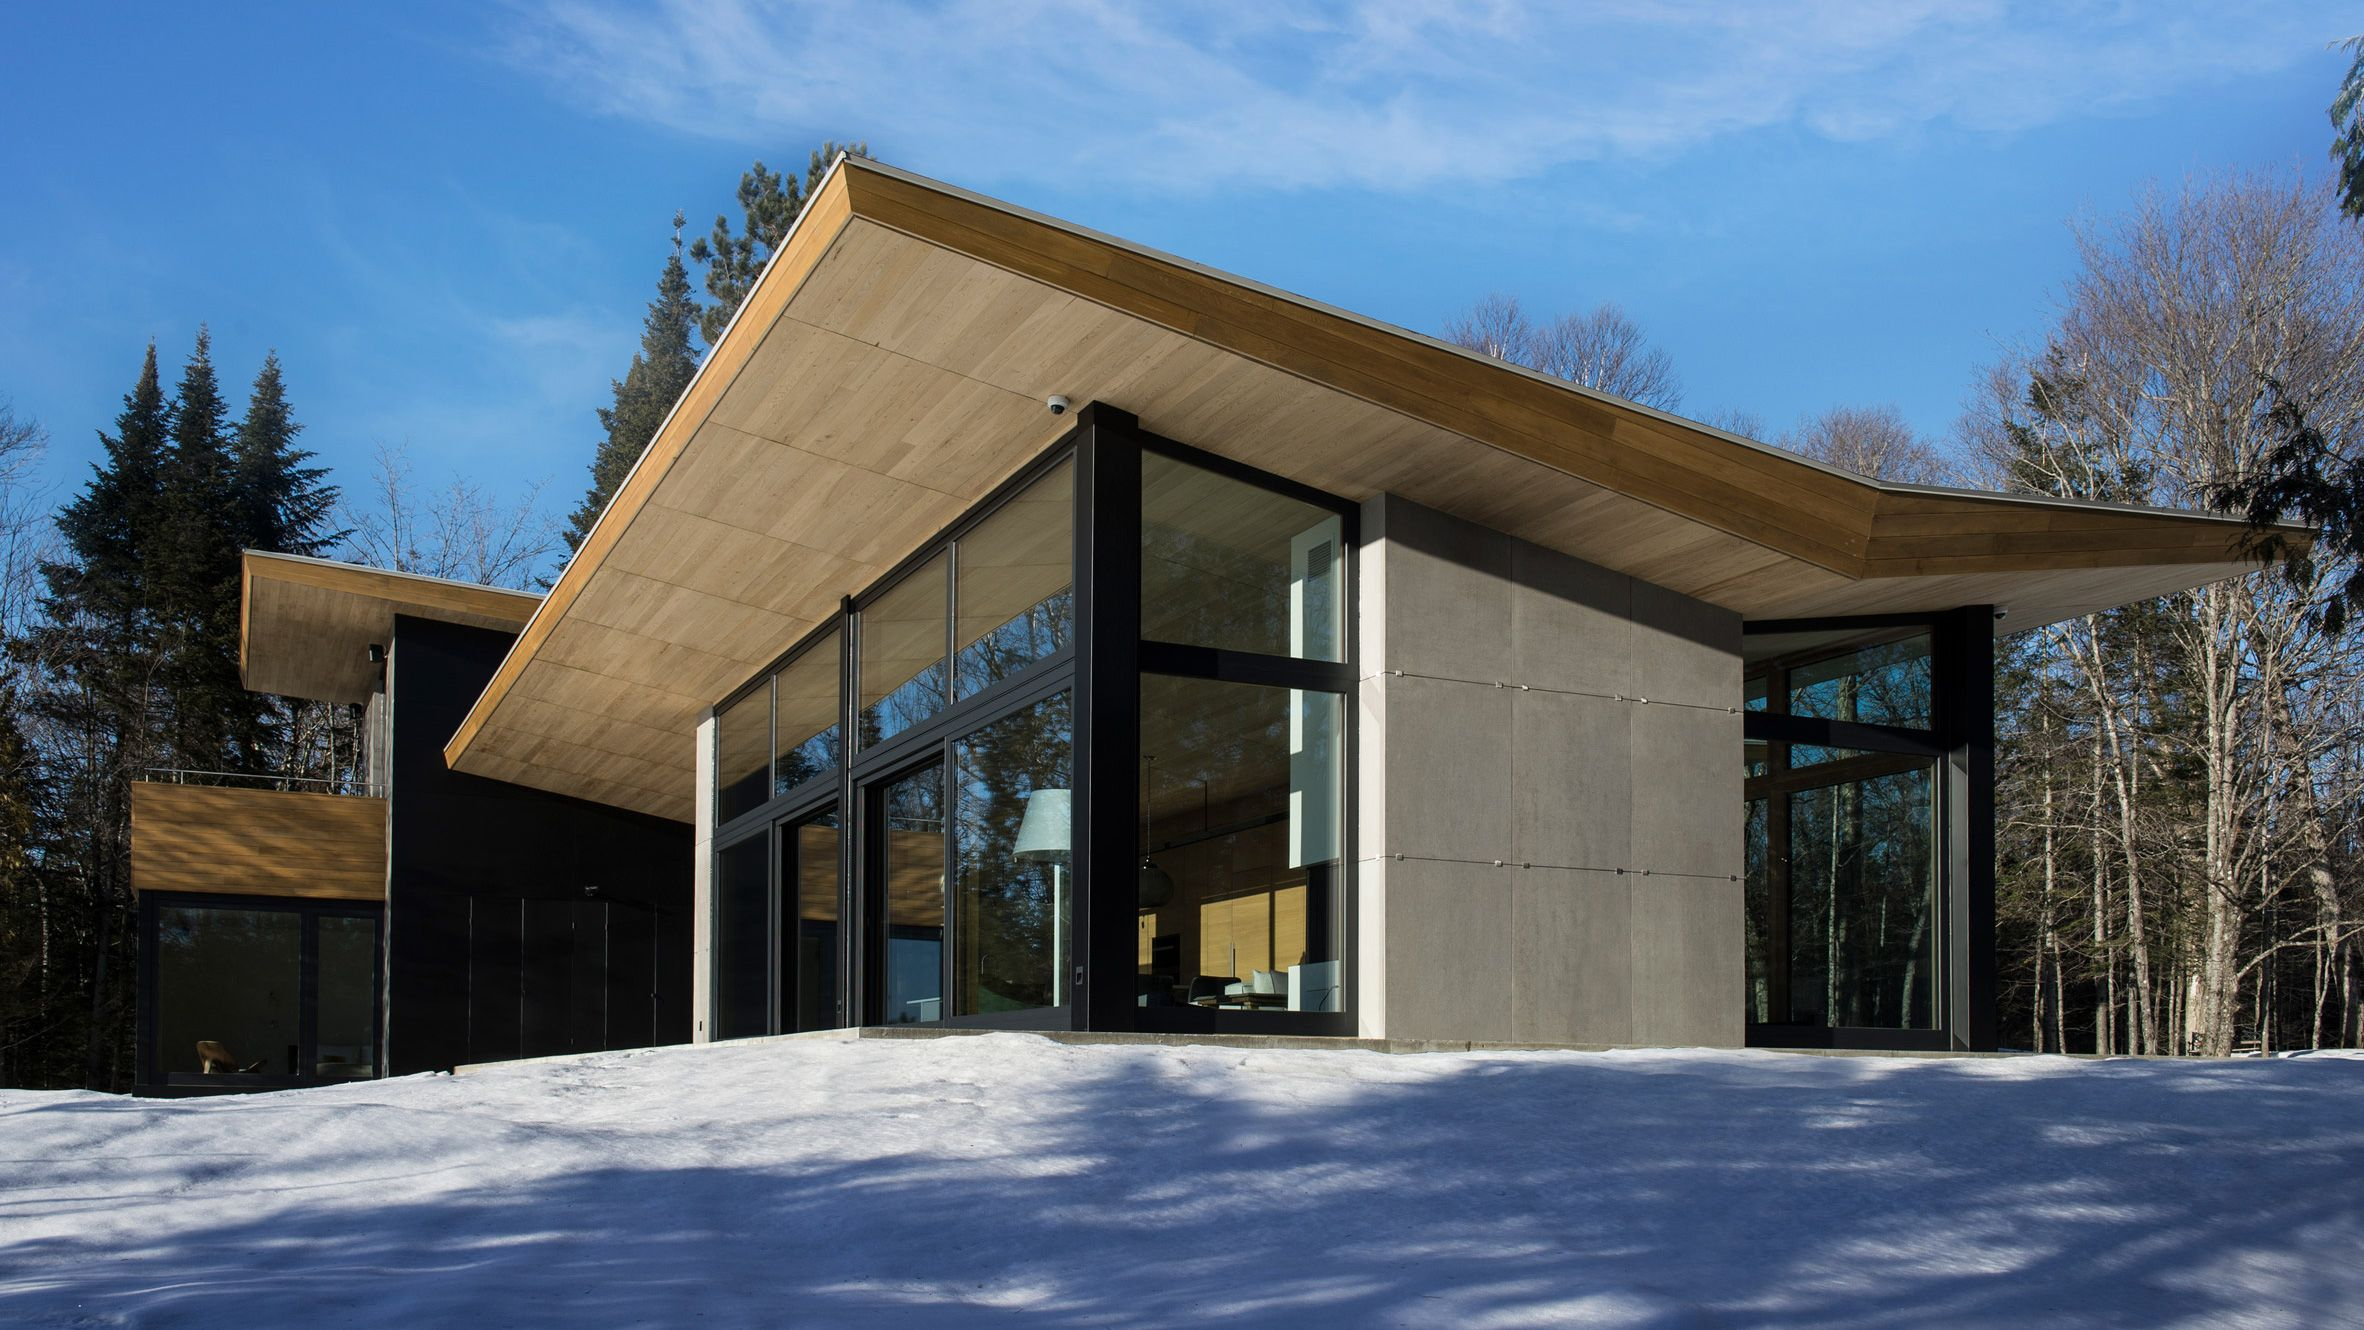 Quebec Ski Chalet By Yh2 Features V Shaped Roof Modelled On Bird S